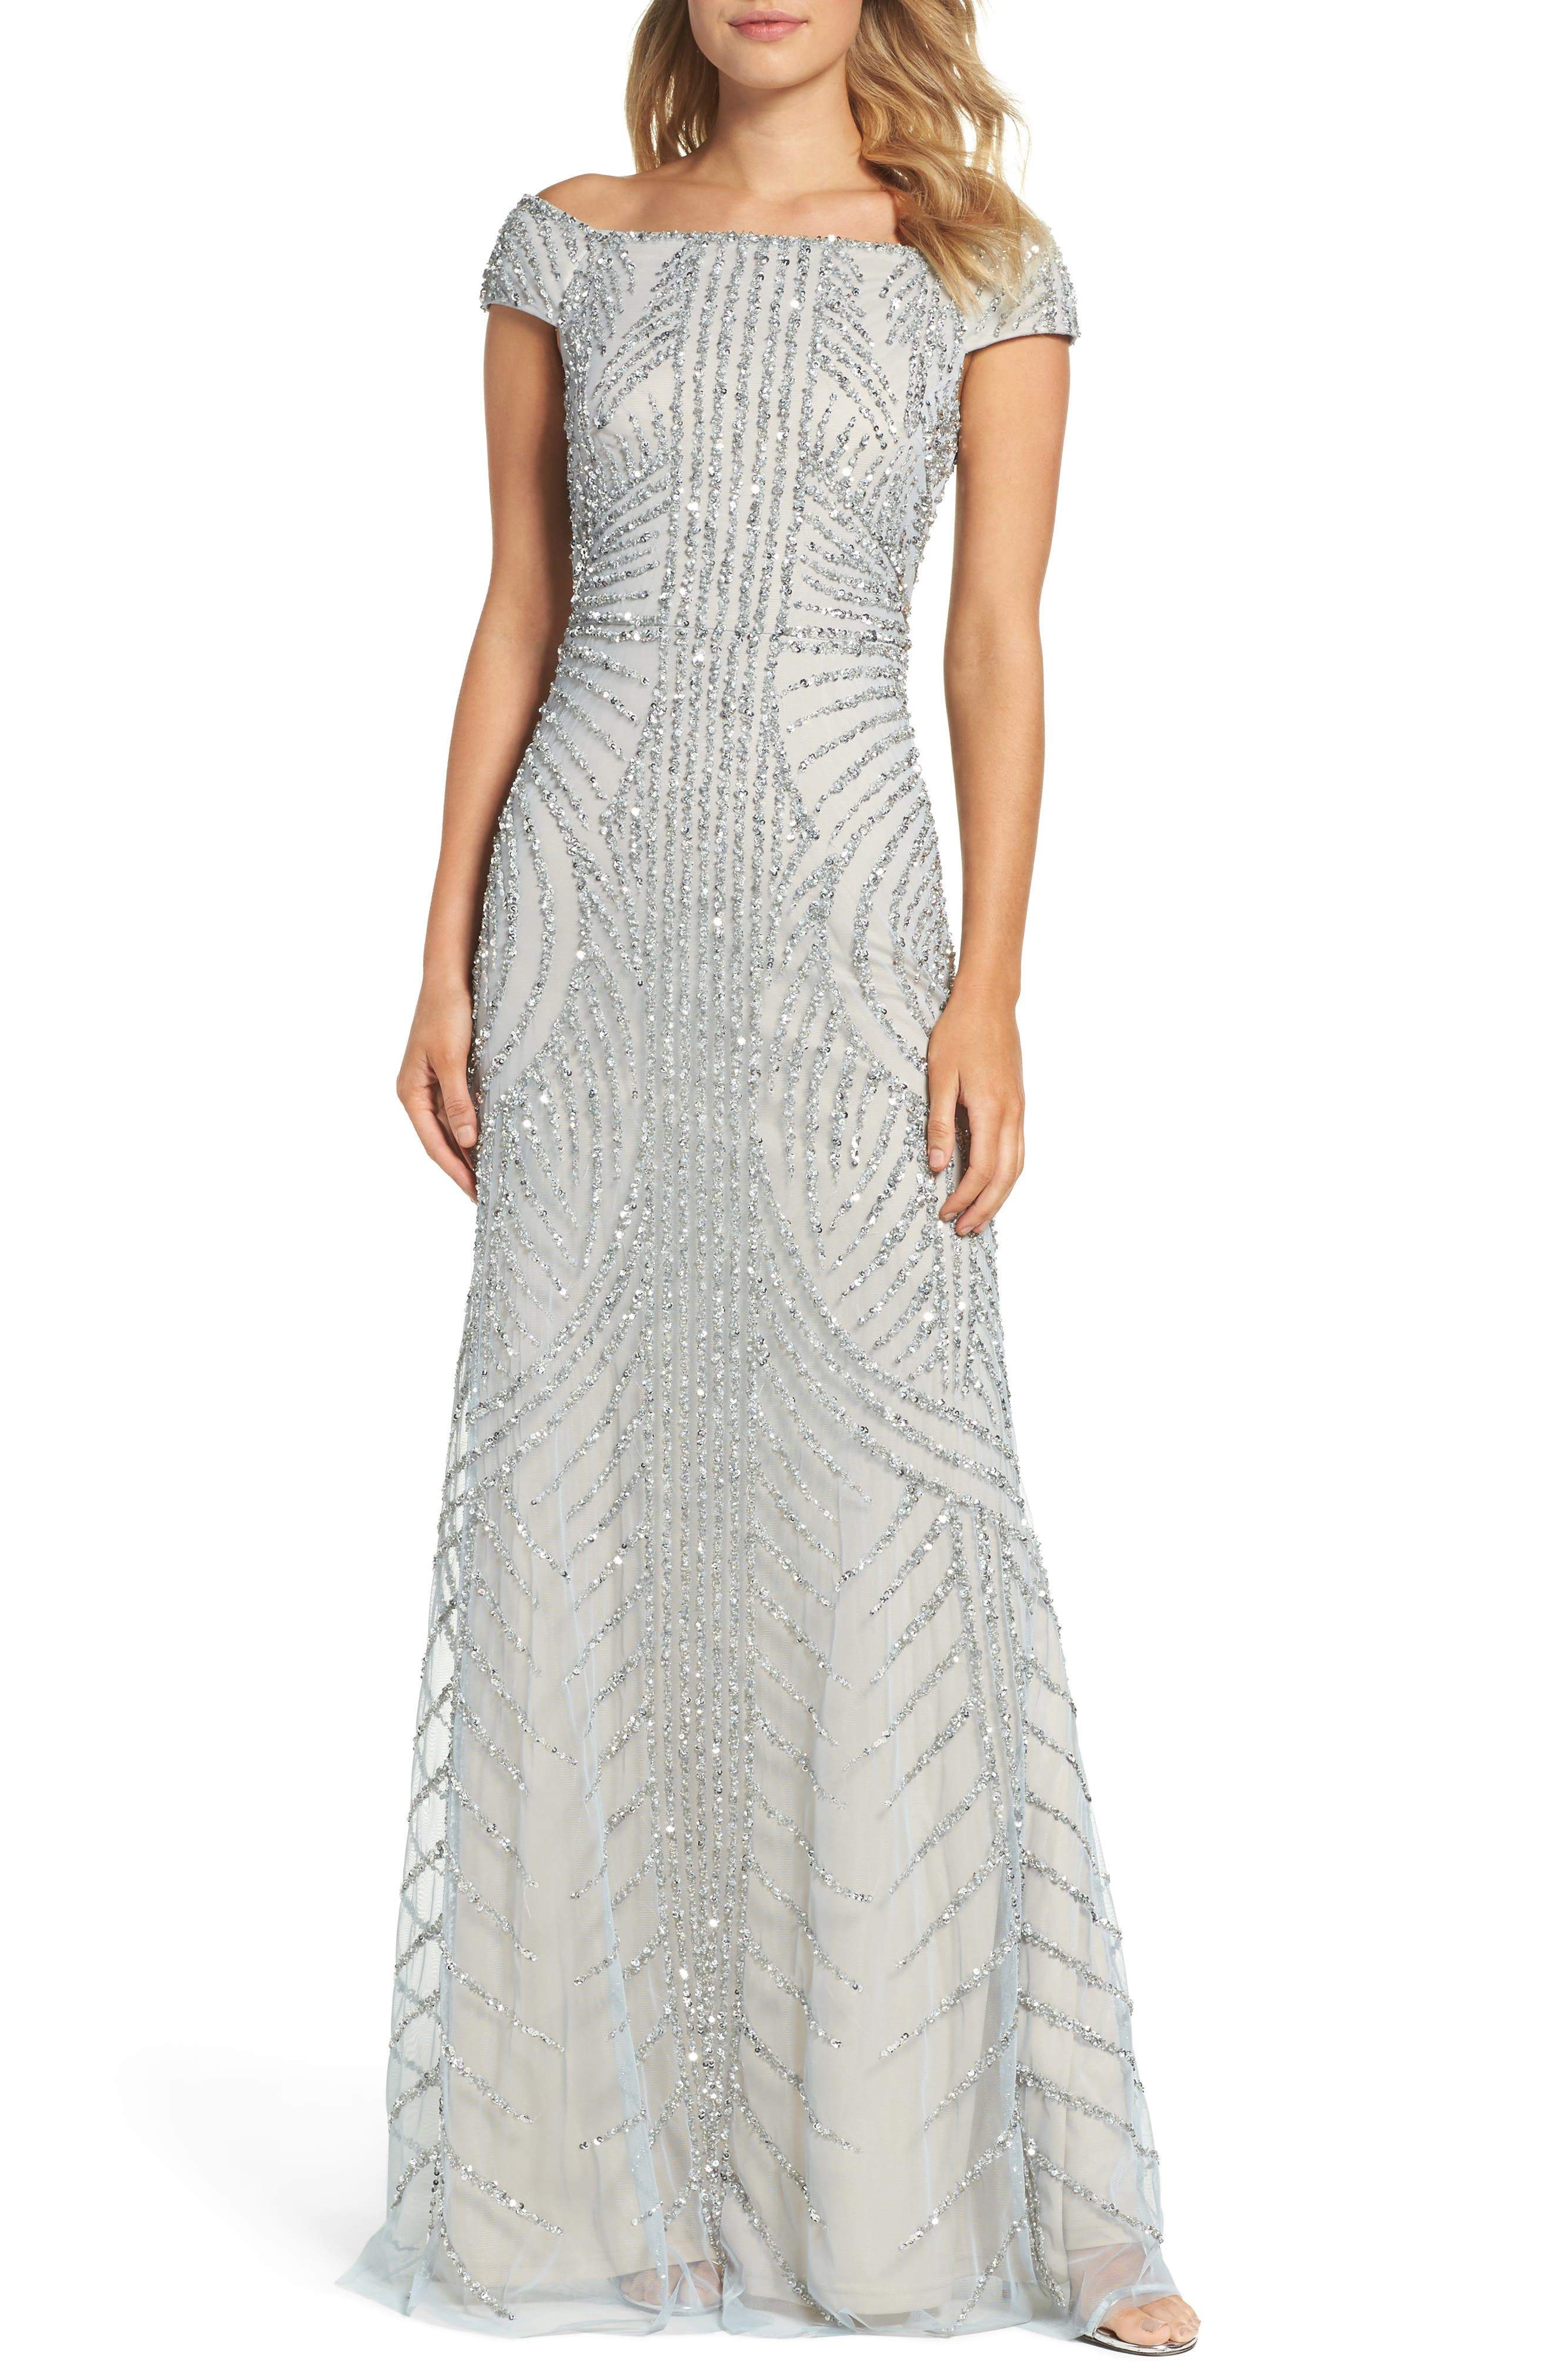 Alternate Image 1 Selected - Adrianna Papell Off the Shoulder Beaded Gown (Regular & Petite)